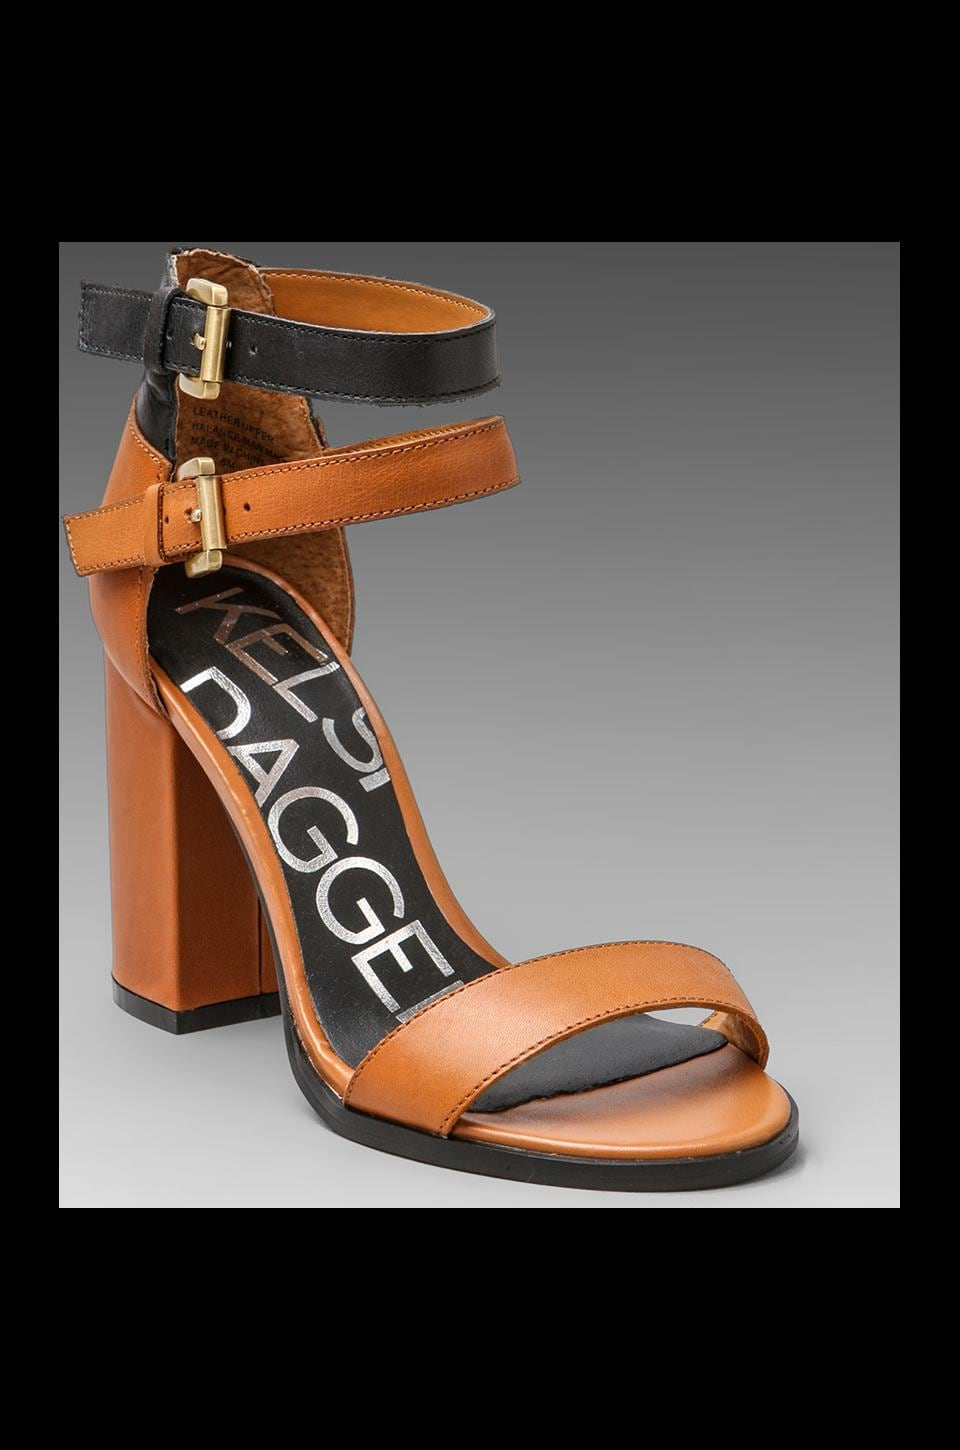 Kelsi Dagger Gin Heel in Luggage/Black